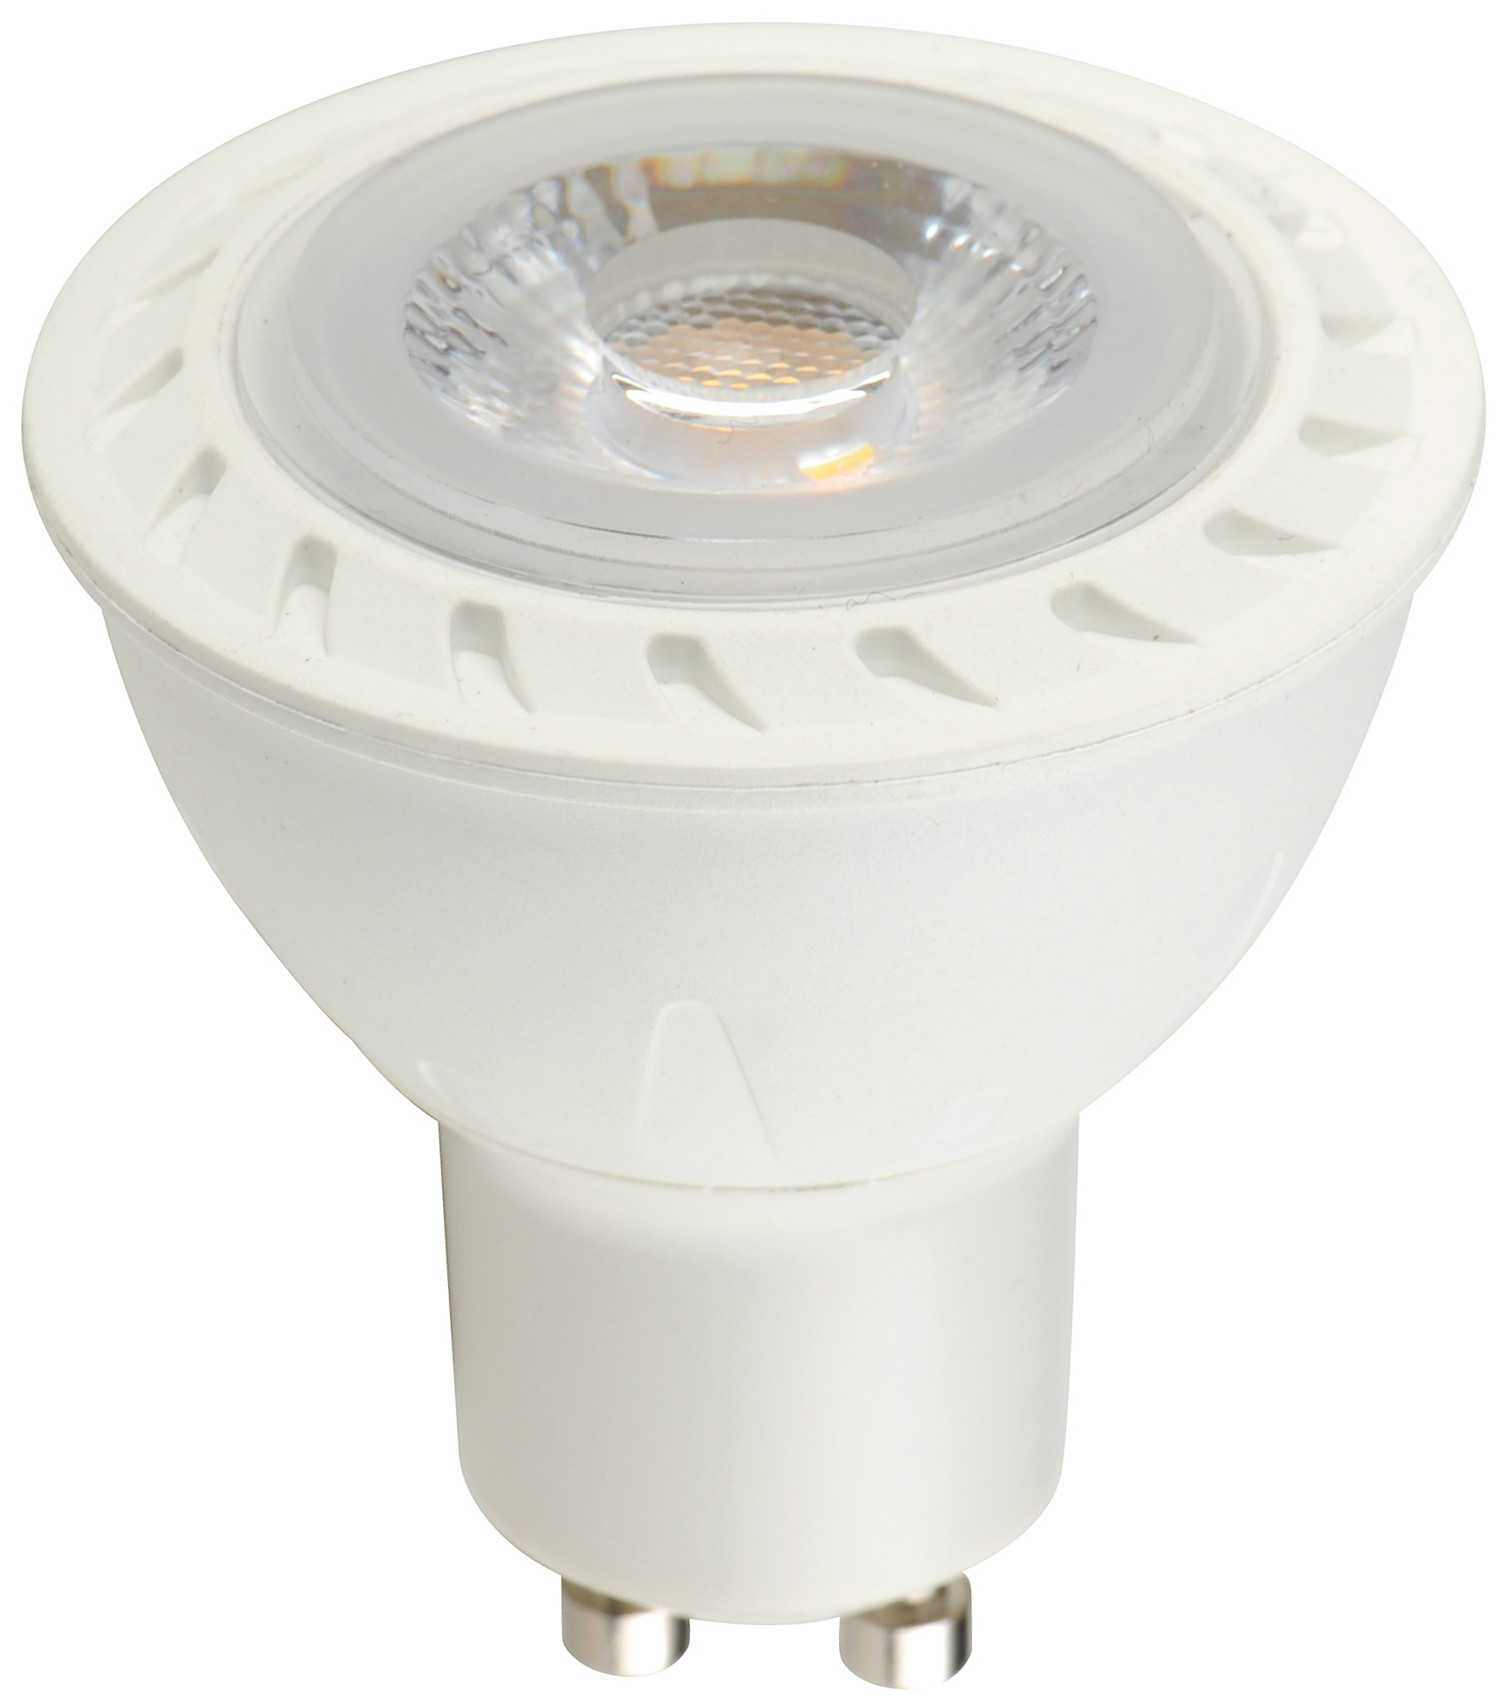 Gu10 Lampe Lampe Led 5w 50w Gu10 3000k Non Dimmable